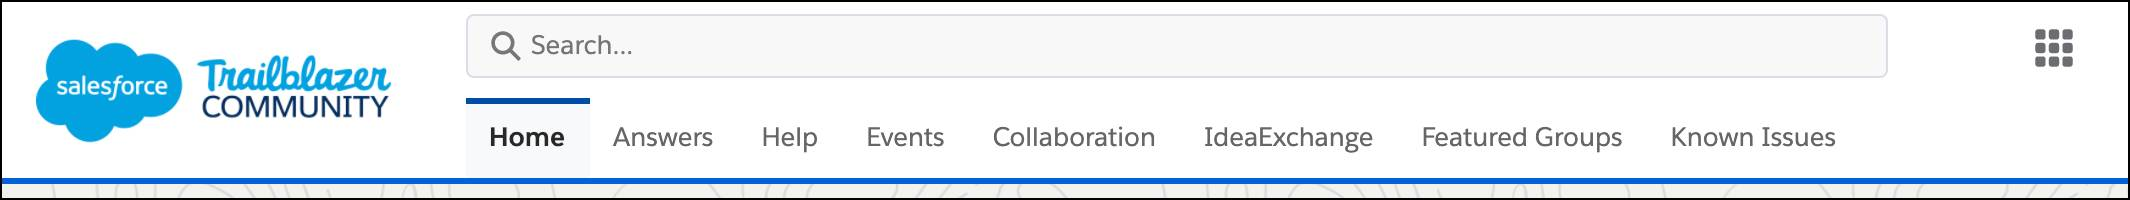 Trailblazer community home page navigation, including Answers, Help, Events, Collaboration, IdeaExchange, Featured Groups, and Known Issues.